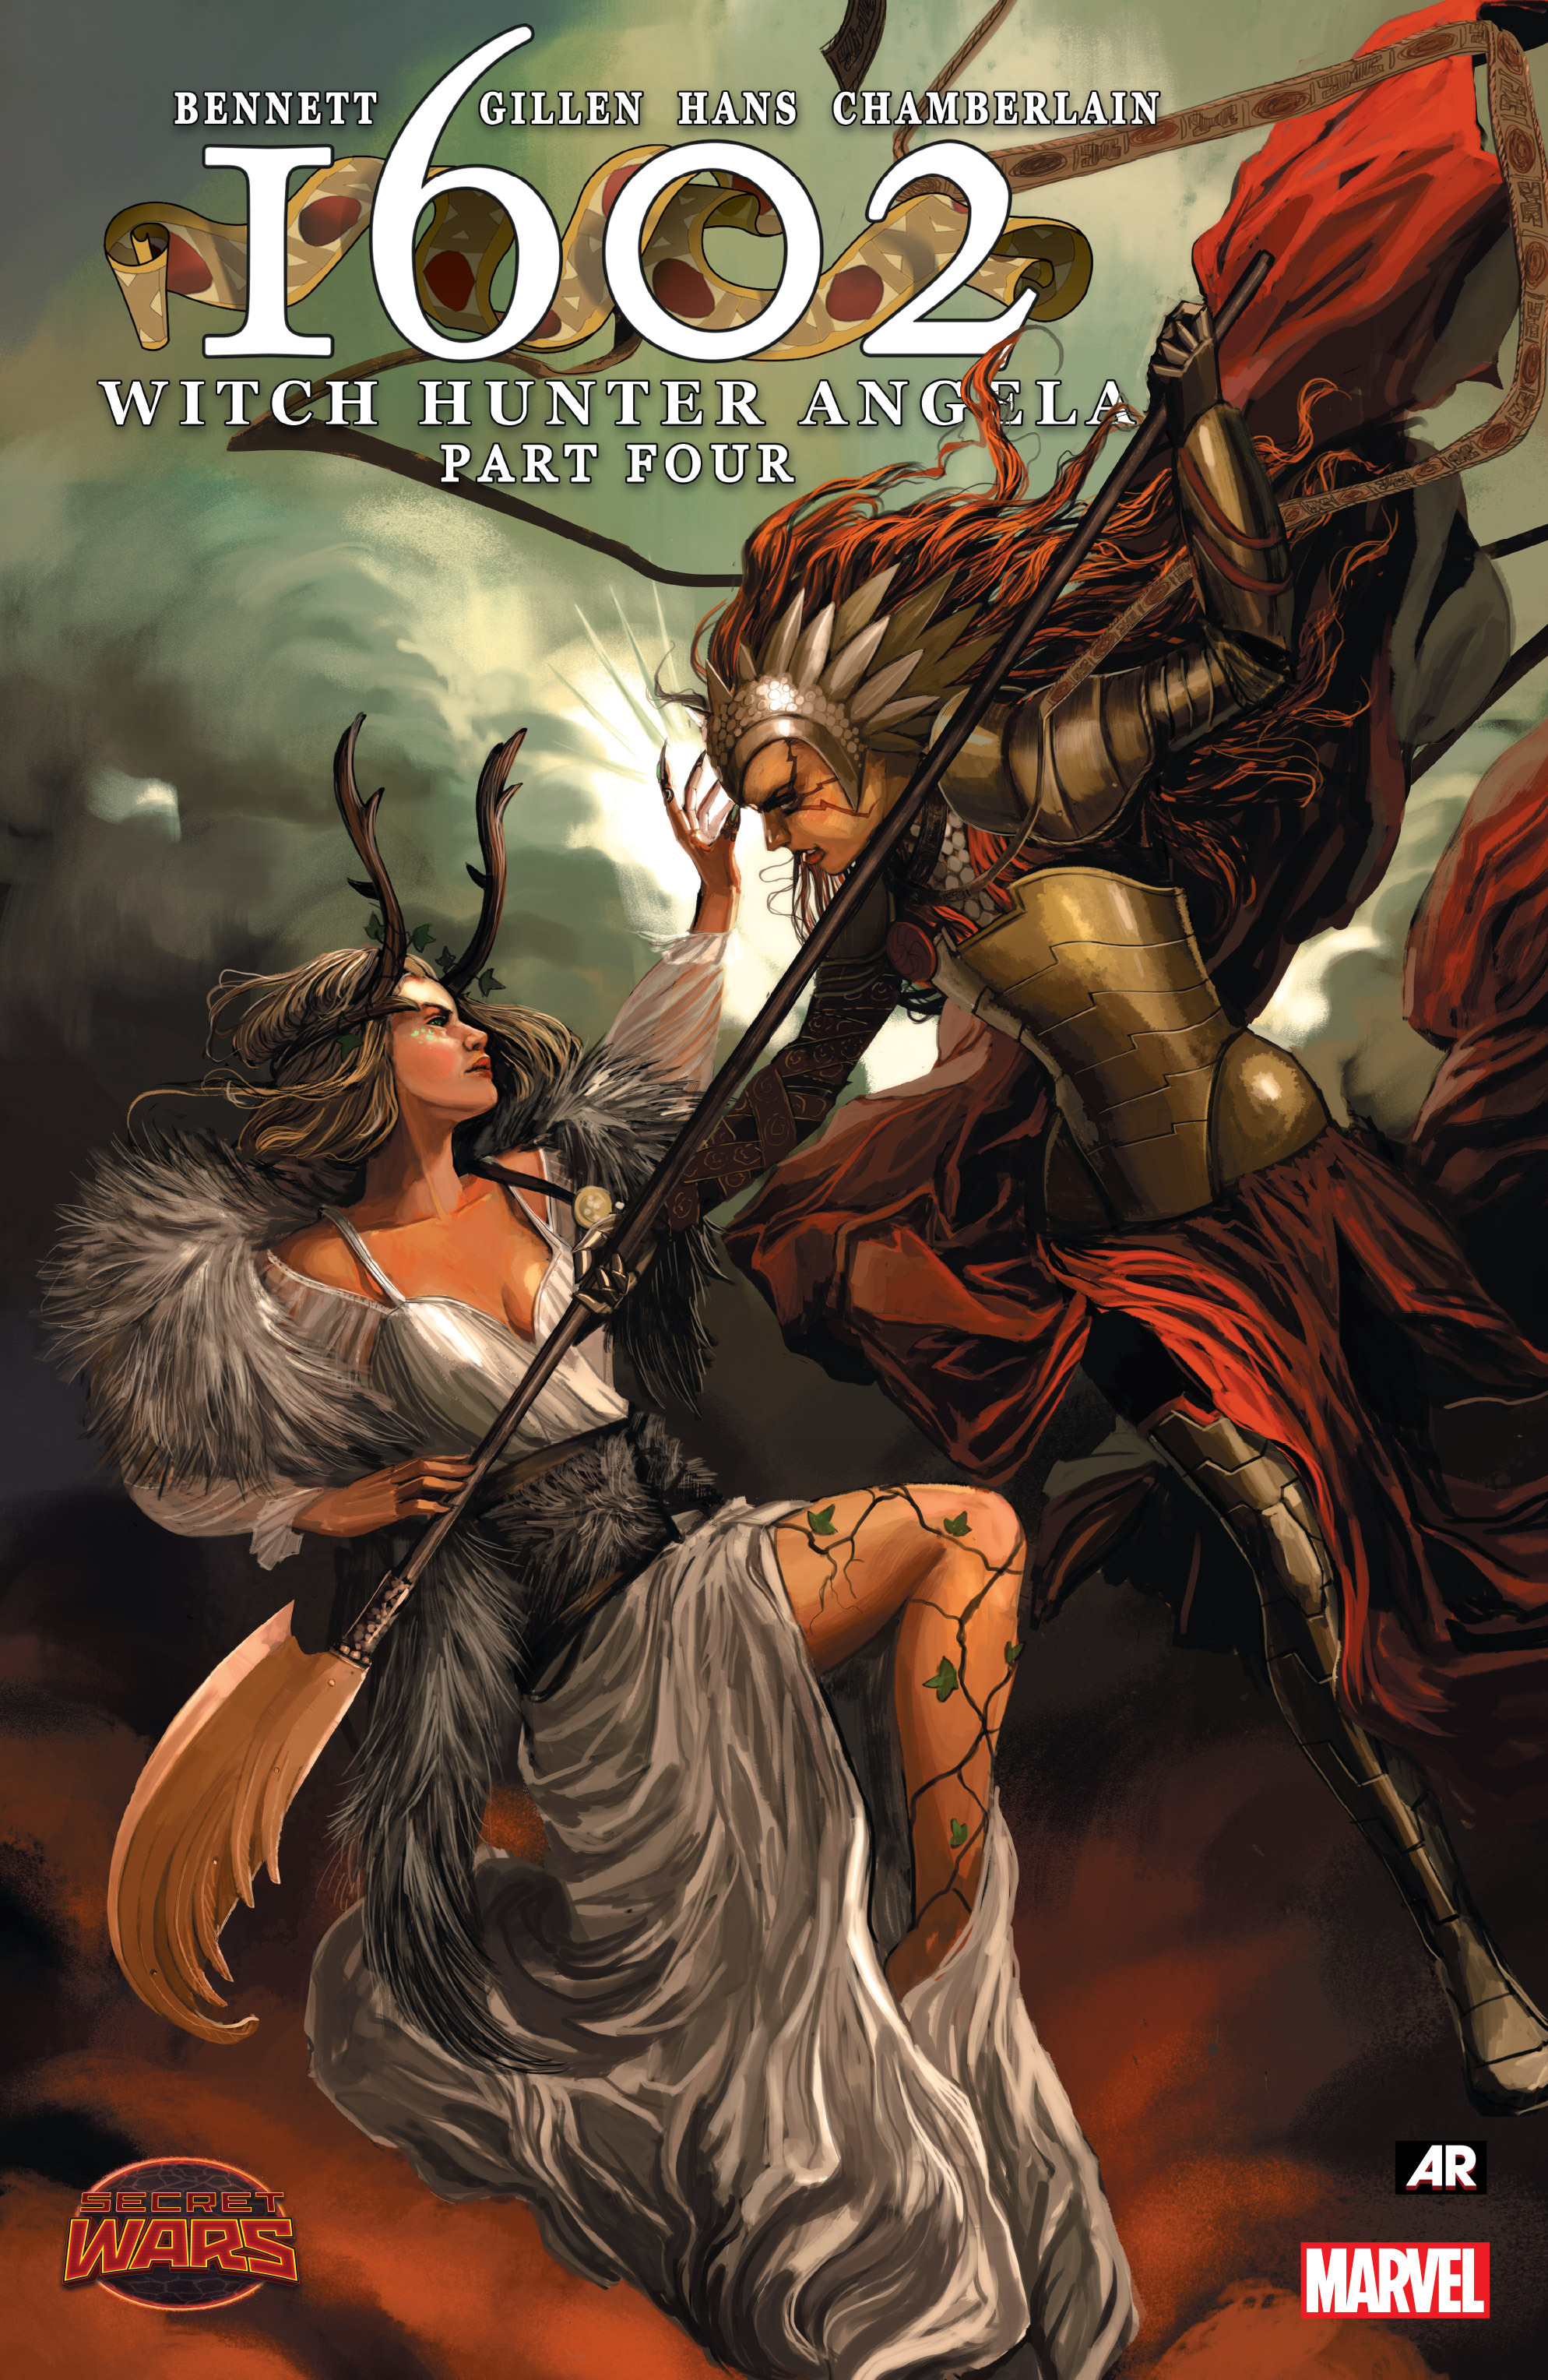 Read online 1602 Witch Hunter Angela comic -  Issue #4 - 1